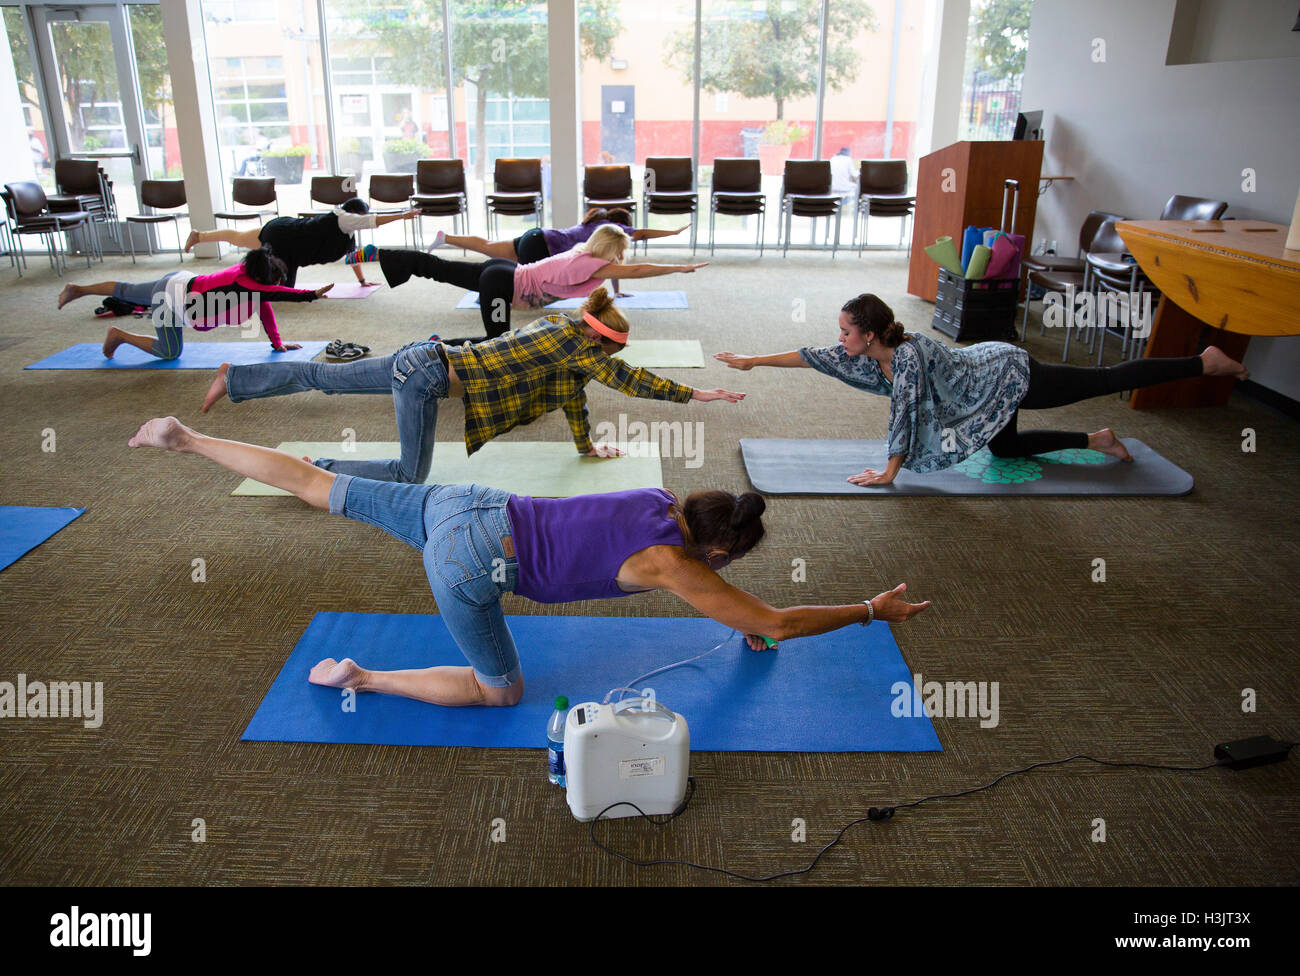 Yoga class at Haven For Hope homeless facility in San Antonio, Texas. Stock Photo